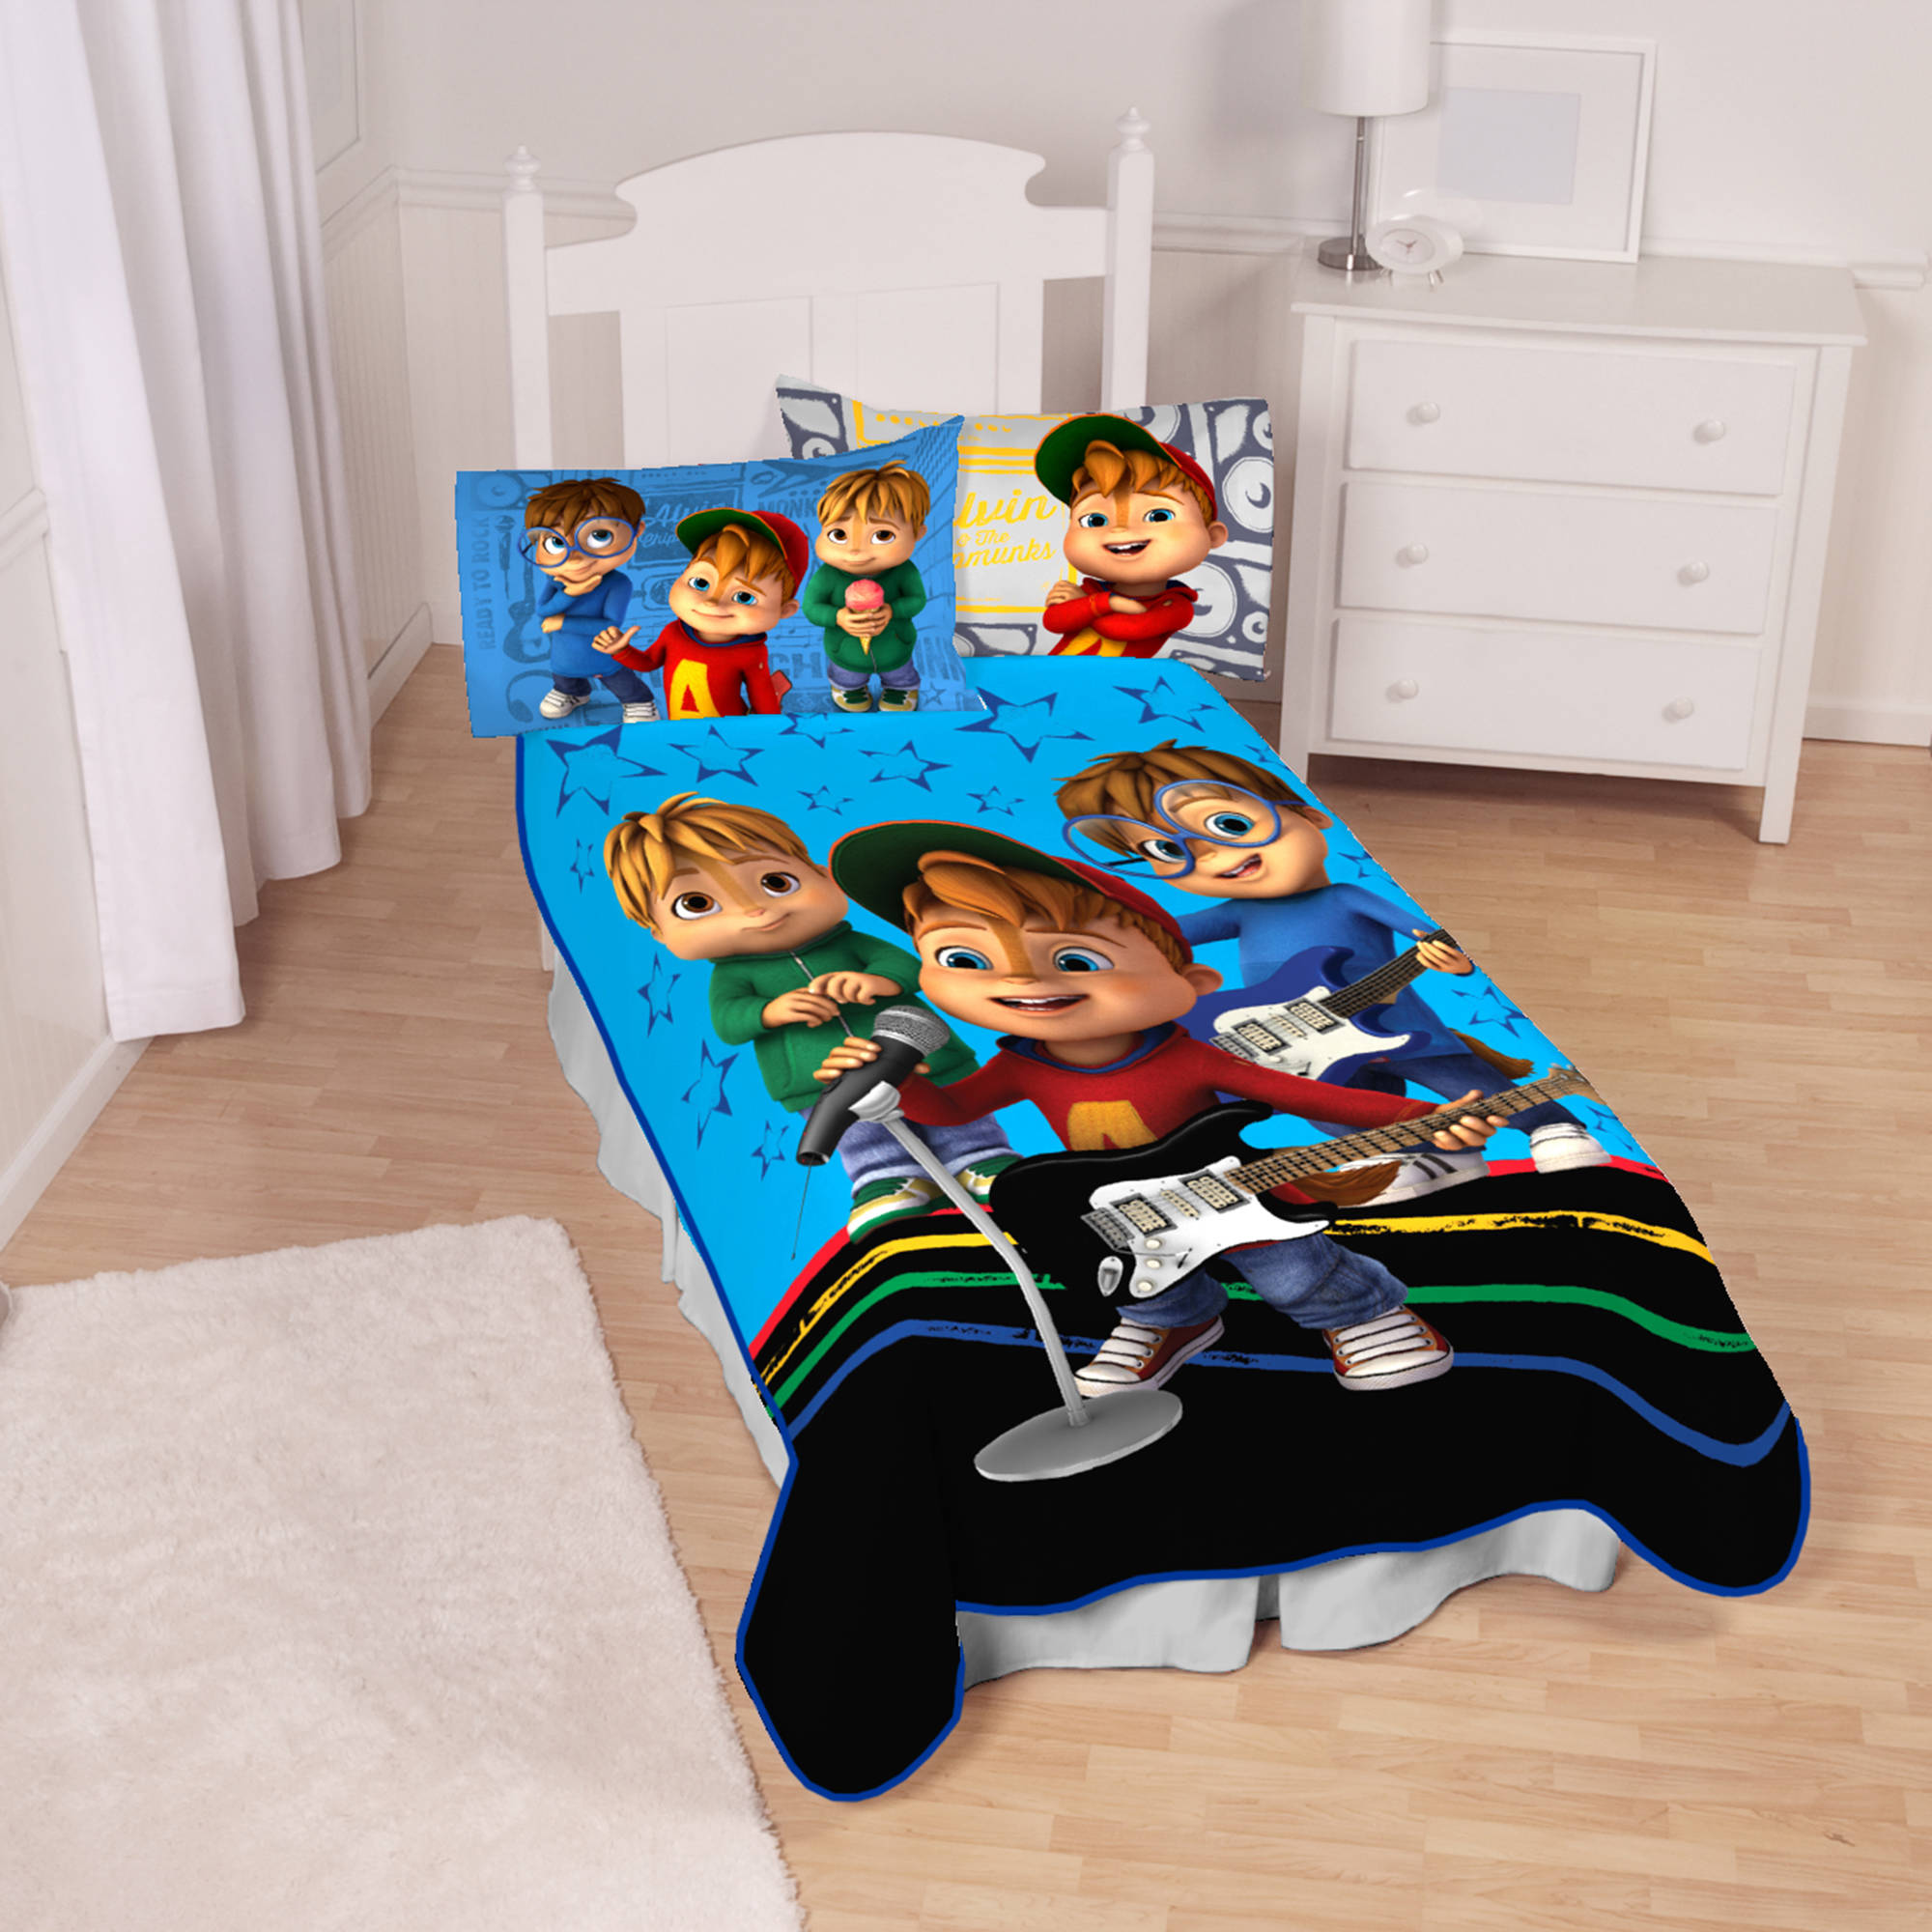 Alvin and the Chipmunks Singing Stars Kids Bedding Blanket